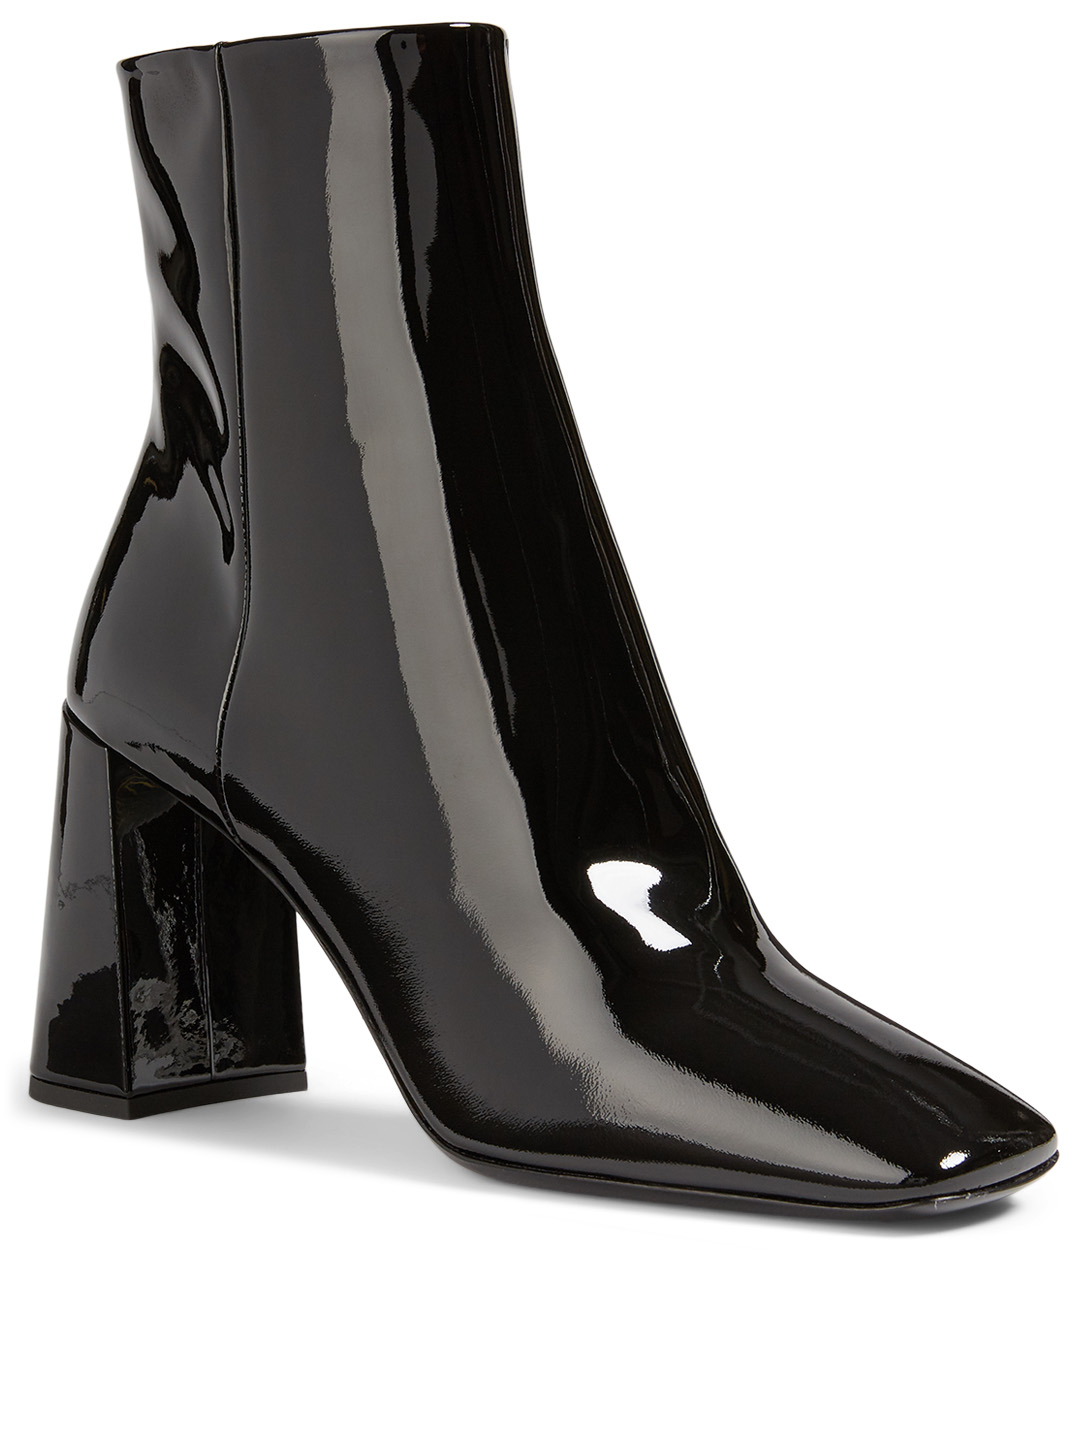 PRADA Patent Leather Ankle Boots Women's Black